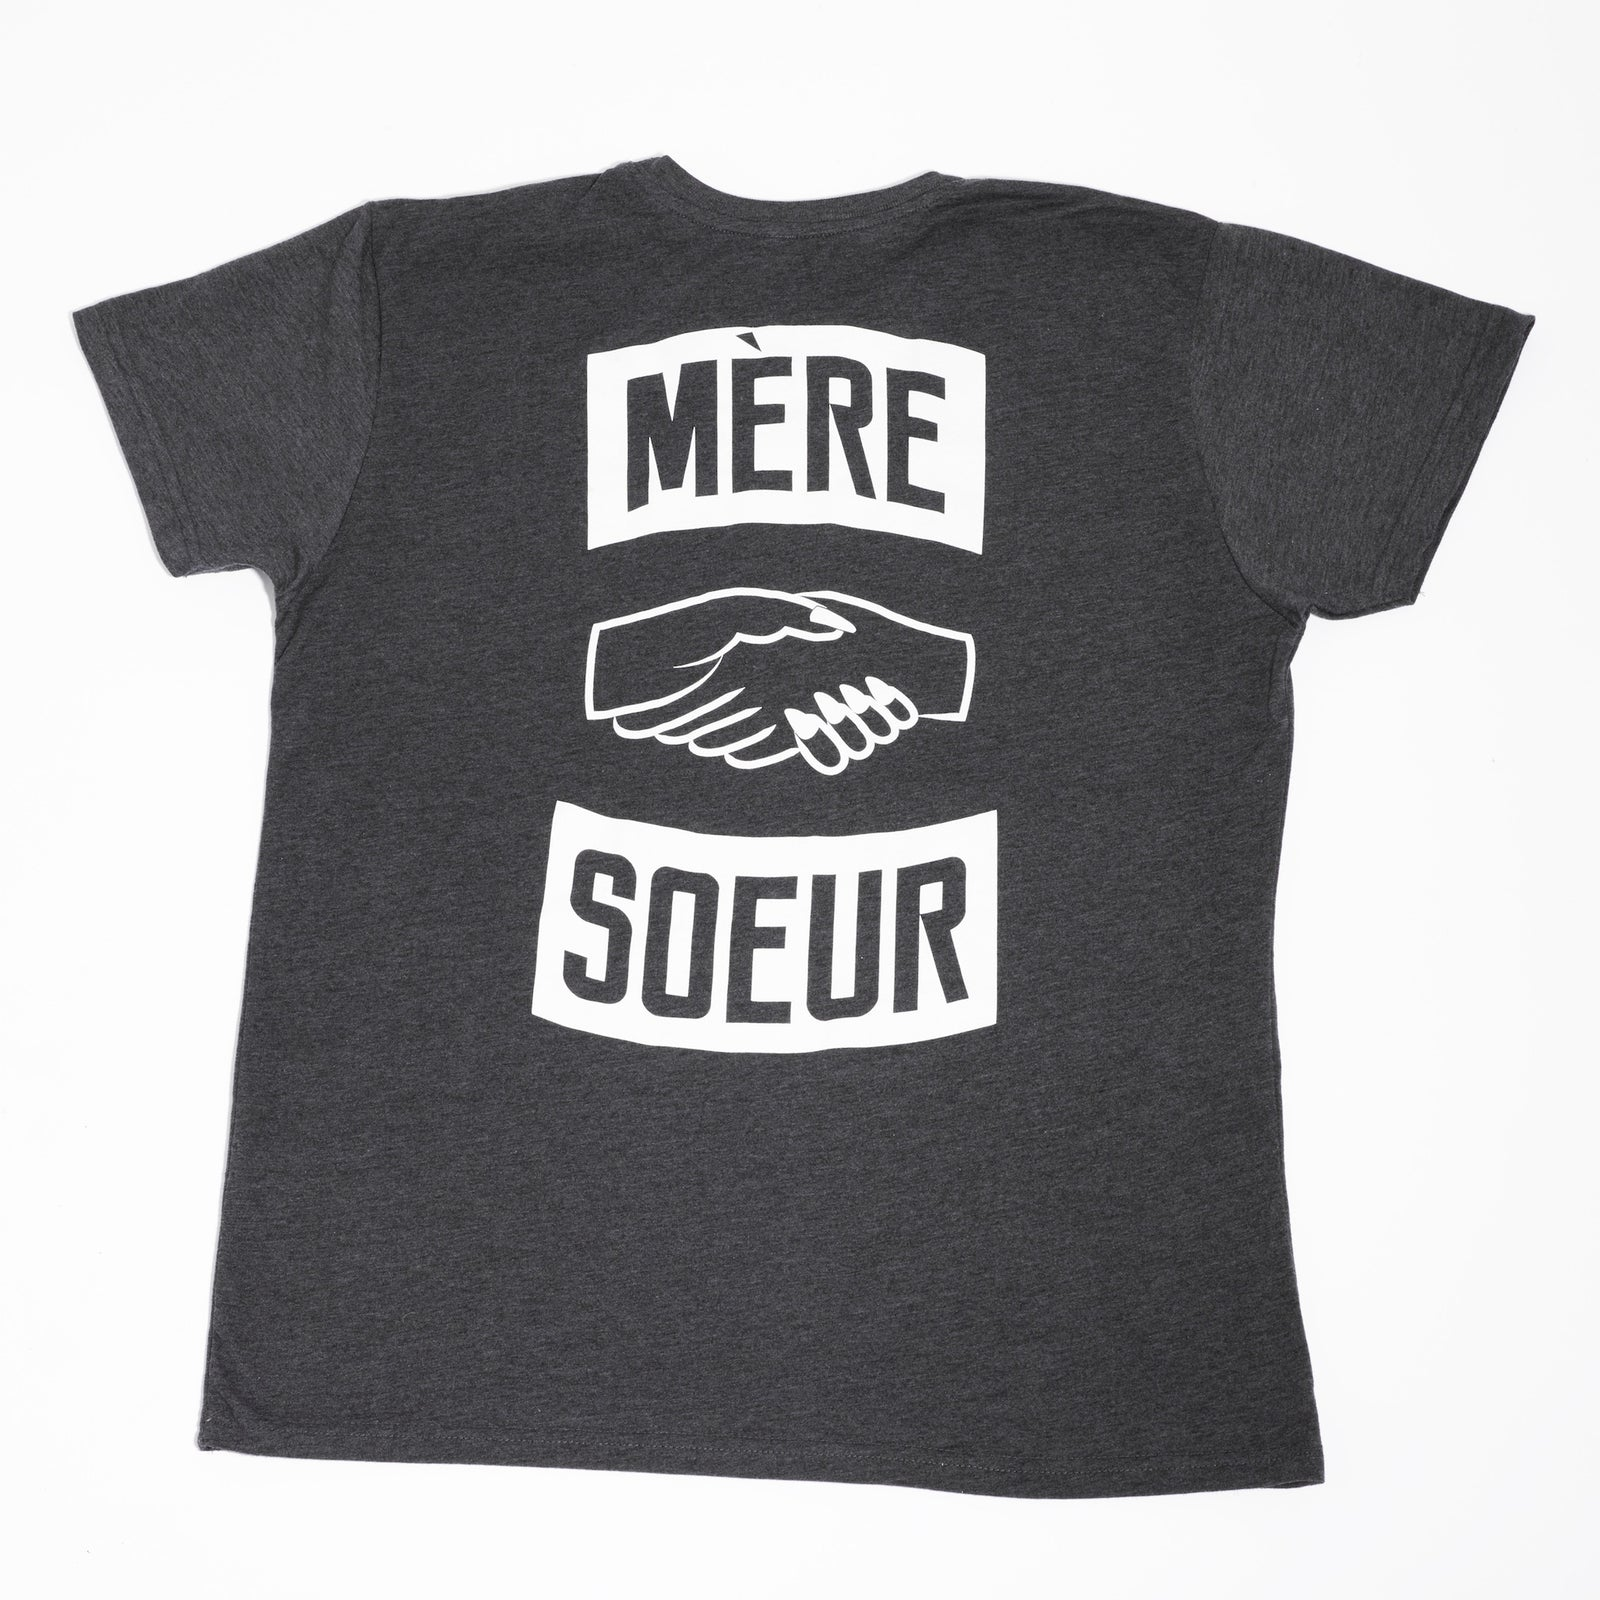 Black t shirt gang -  Mama Gang Black T Shirt By M Re Soeur Mere Soeur Is A Lifestyle Brand